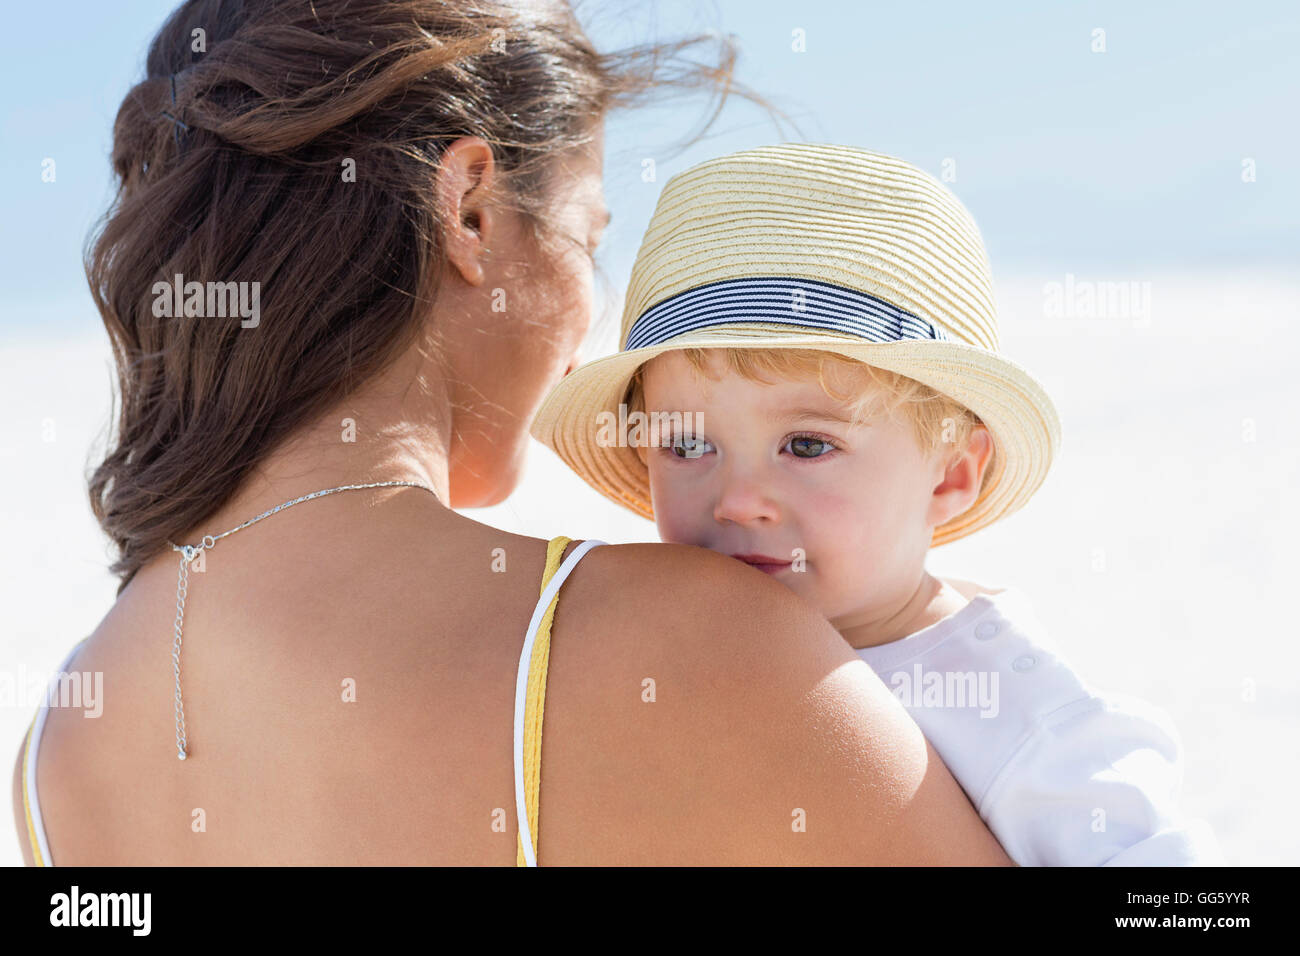 Rear view of a woman carrying her baby - Stock Image